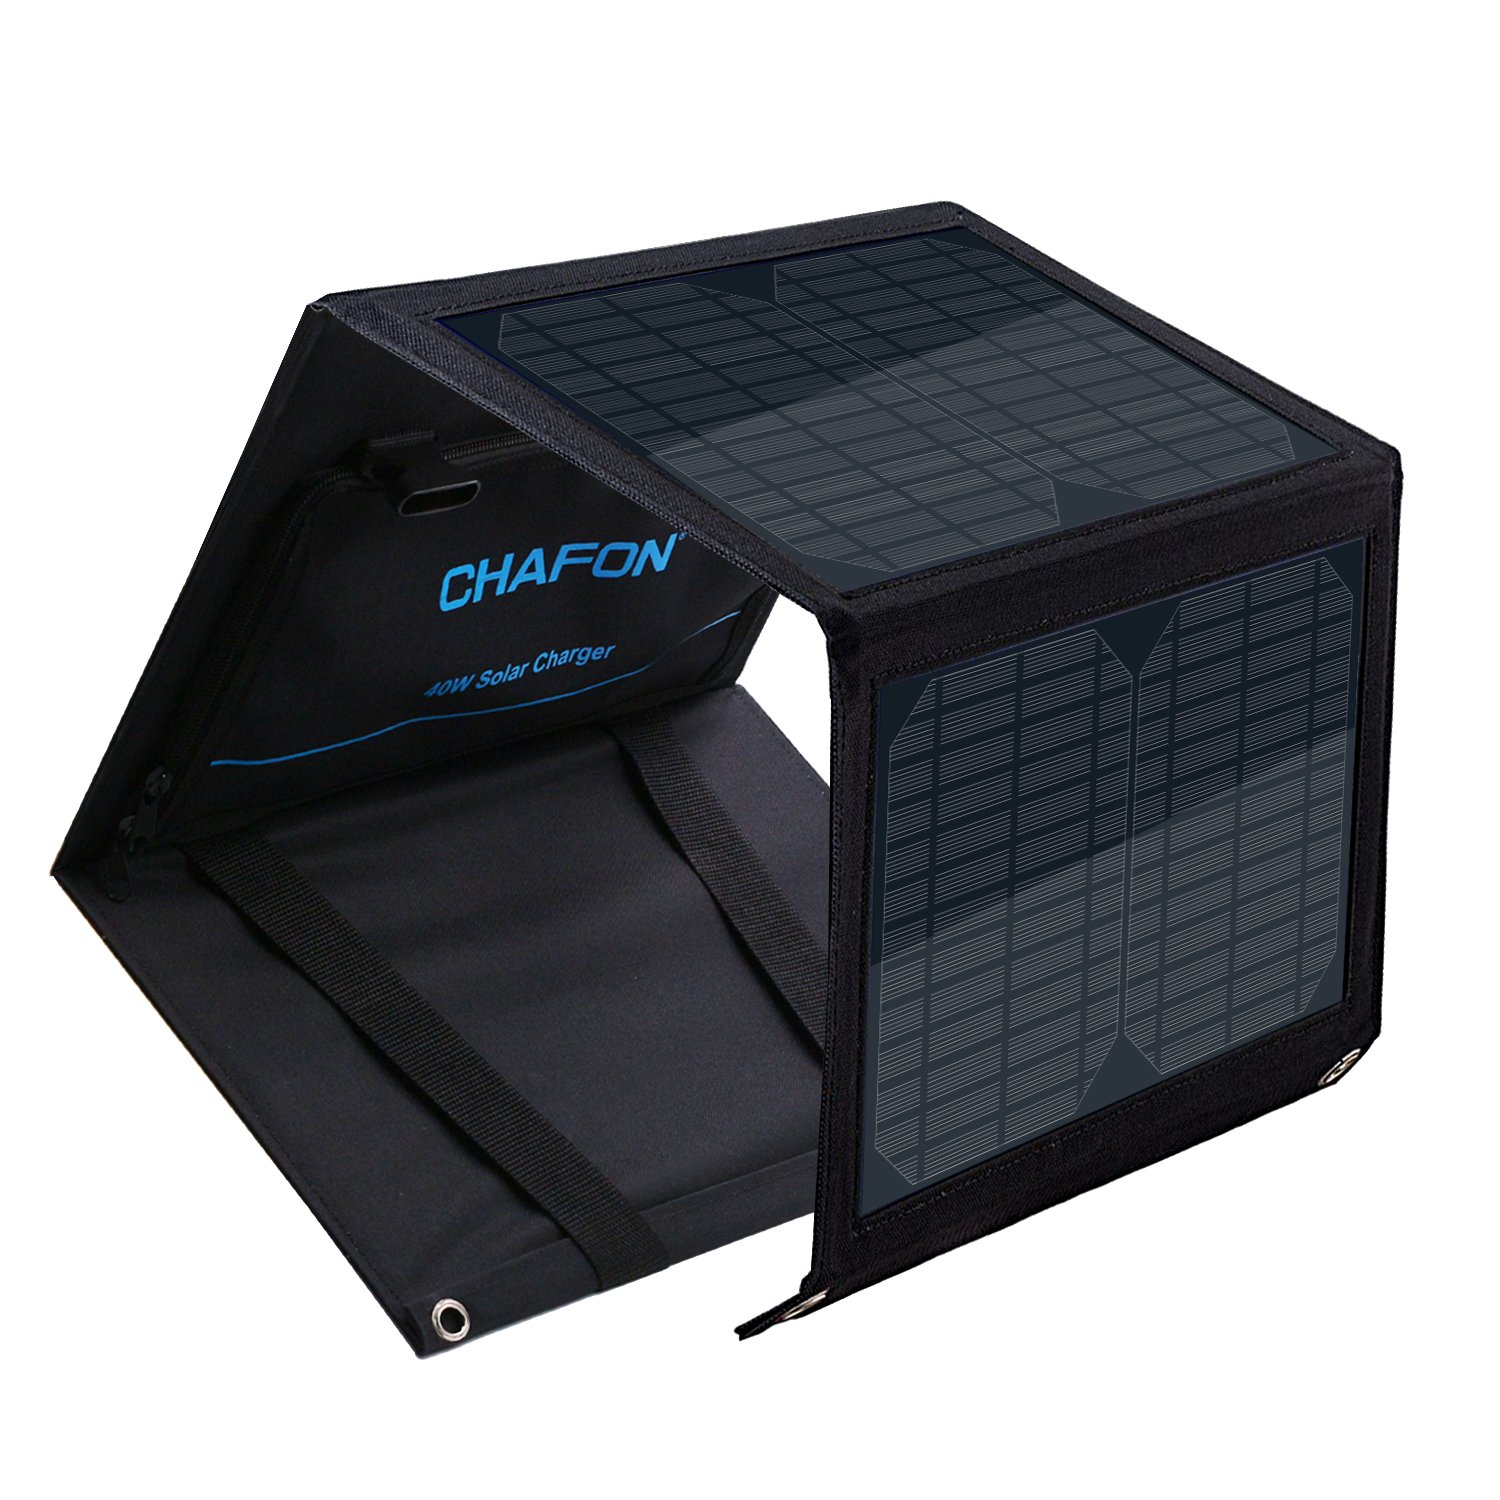 CHAFON 40W Foldable Solar Panel Charger Mono-Crystalline with 18V DC Output for Suaoki/Enkeeo/AIPER/ROCJKPALS/Aeiusny/Webetop Portable Power Station,Laptop Tablet GPS,5V/2A USB Port for Camping by CHAFON